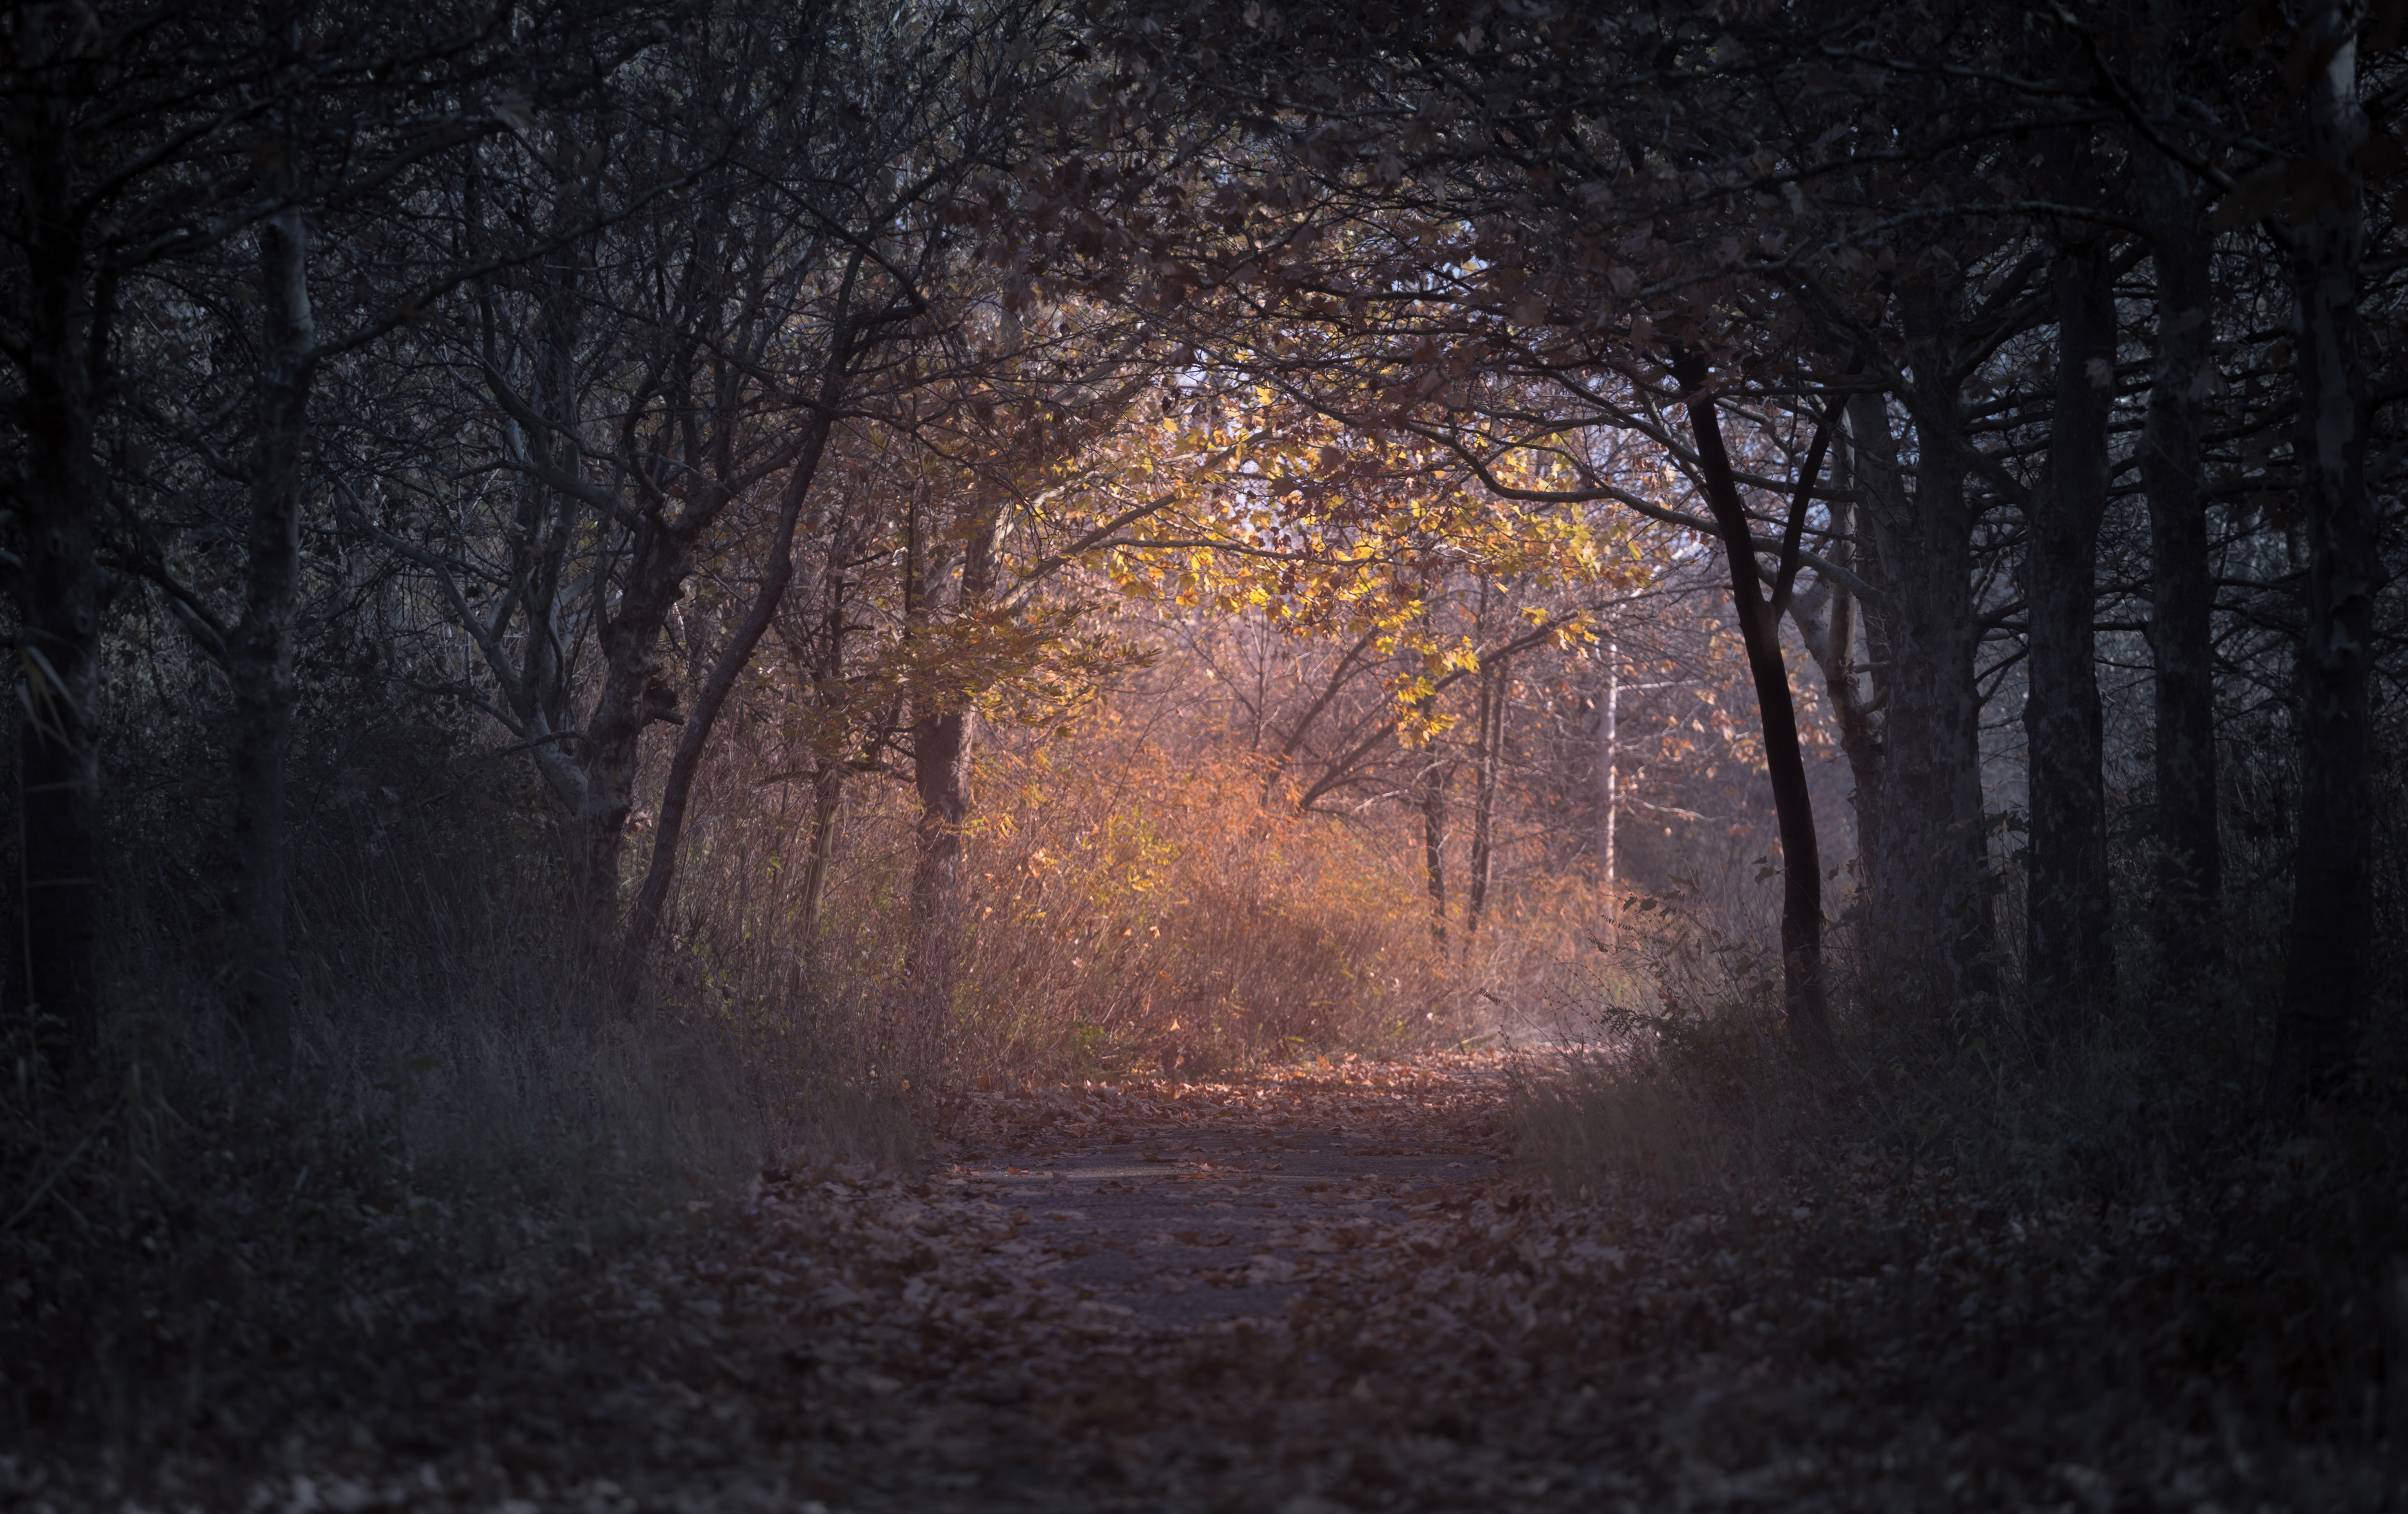 320x240 Trees Branch Pathway Dark Autumn Forest Backlit Apple Iphone Ipod Touch Galaxy Ace Hd 4k Wallpapers Images Backgrounds Photos And Pictures